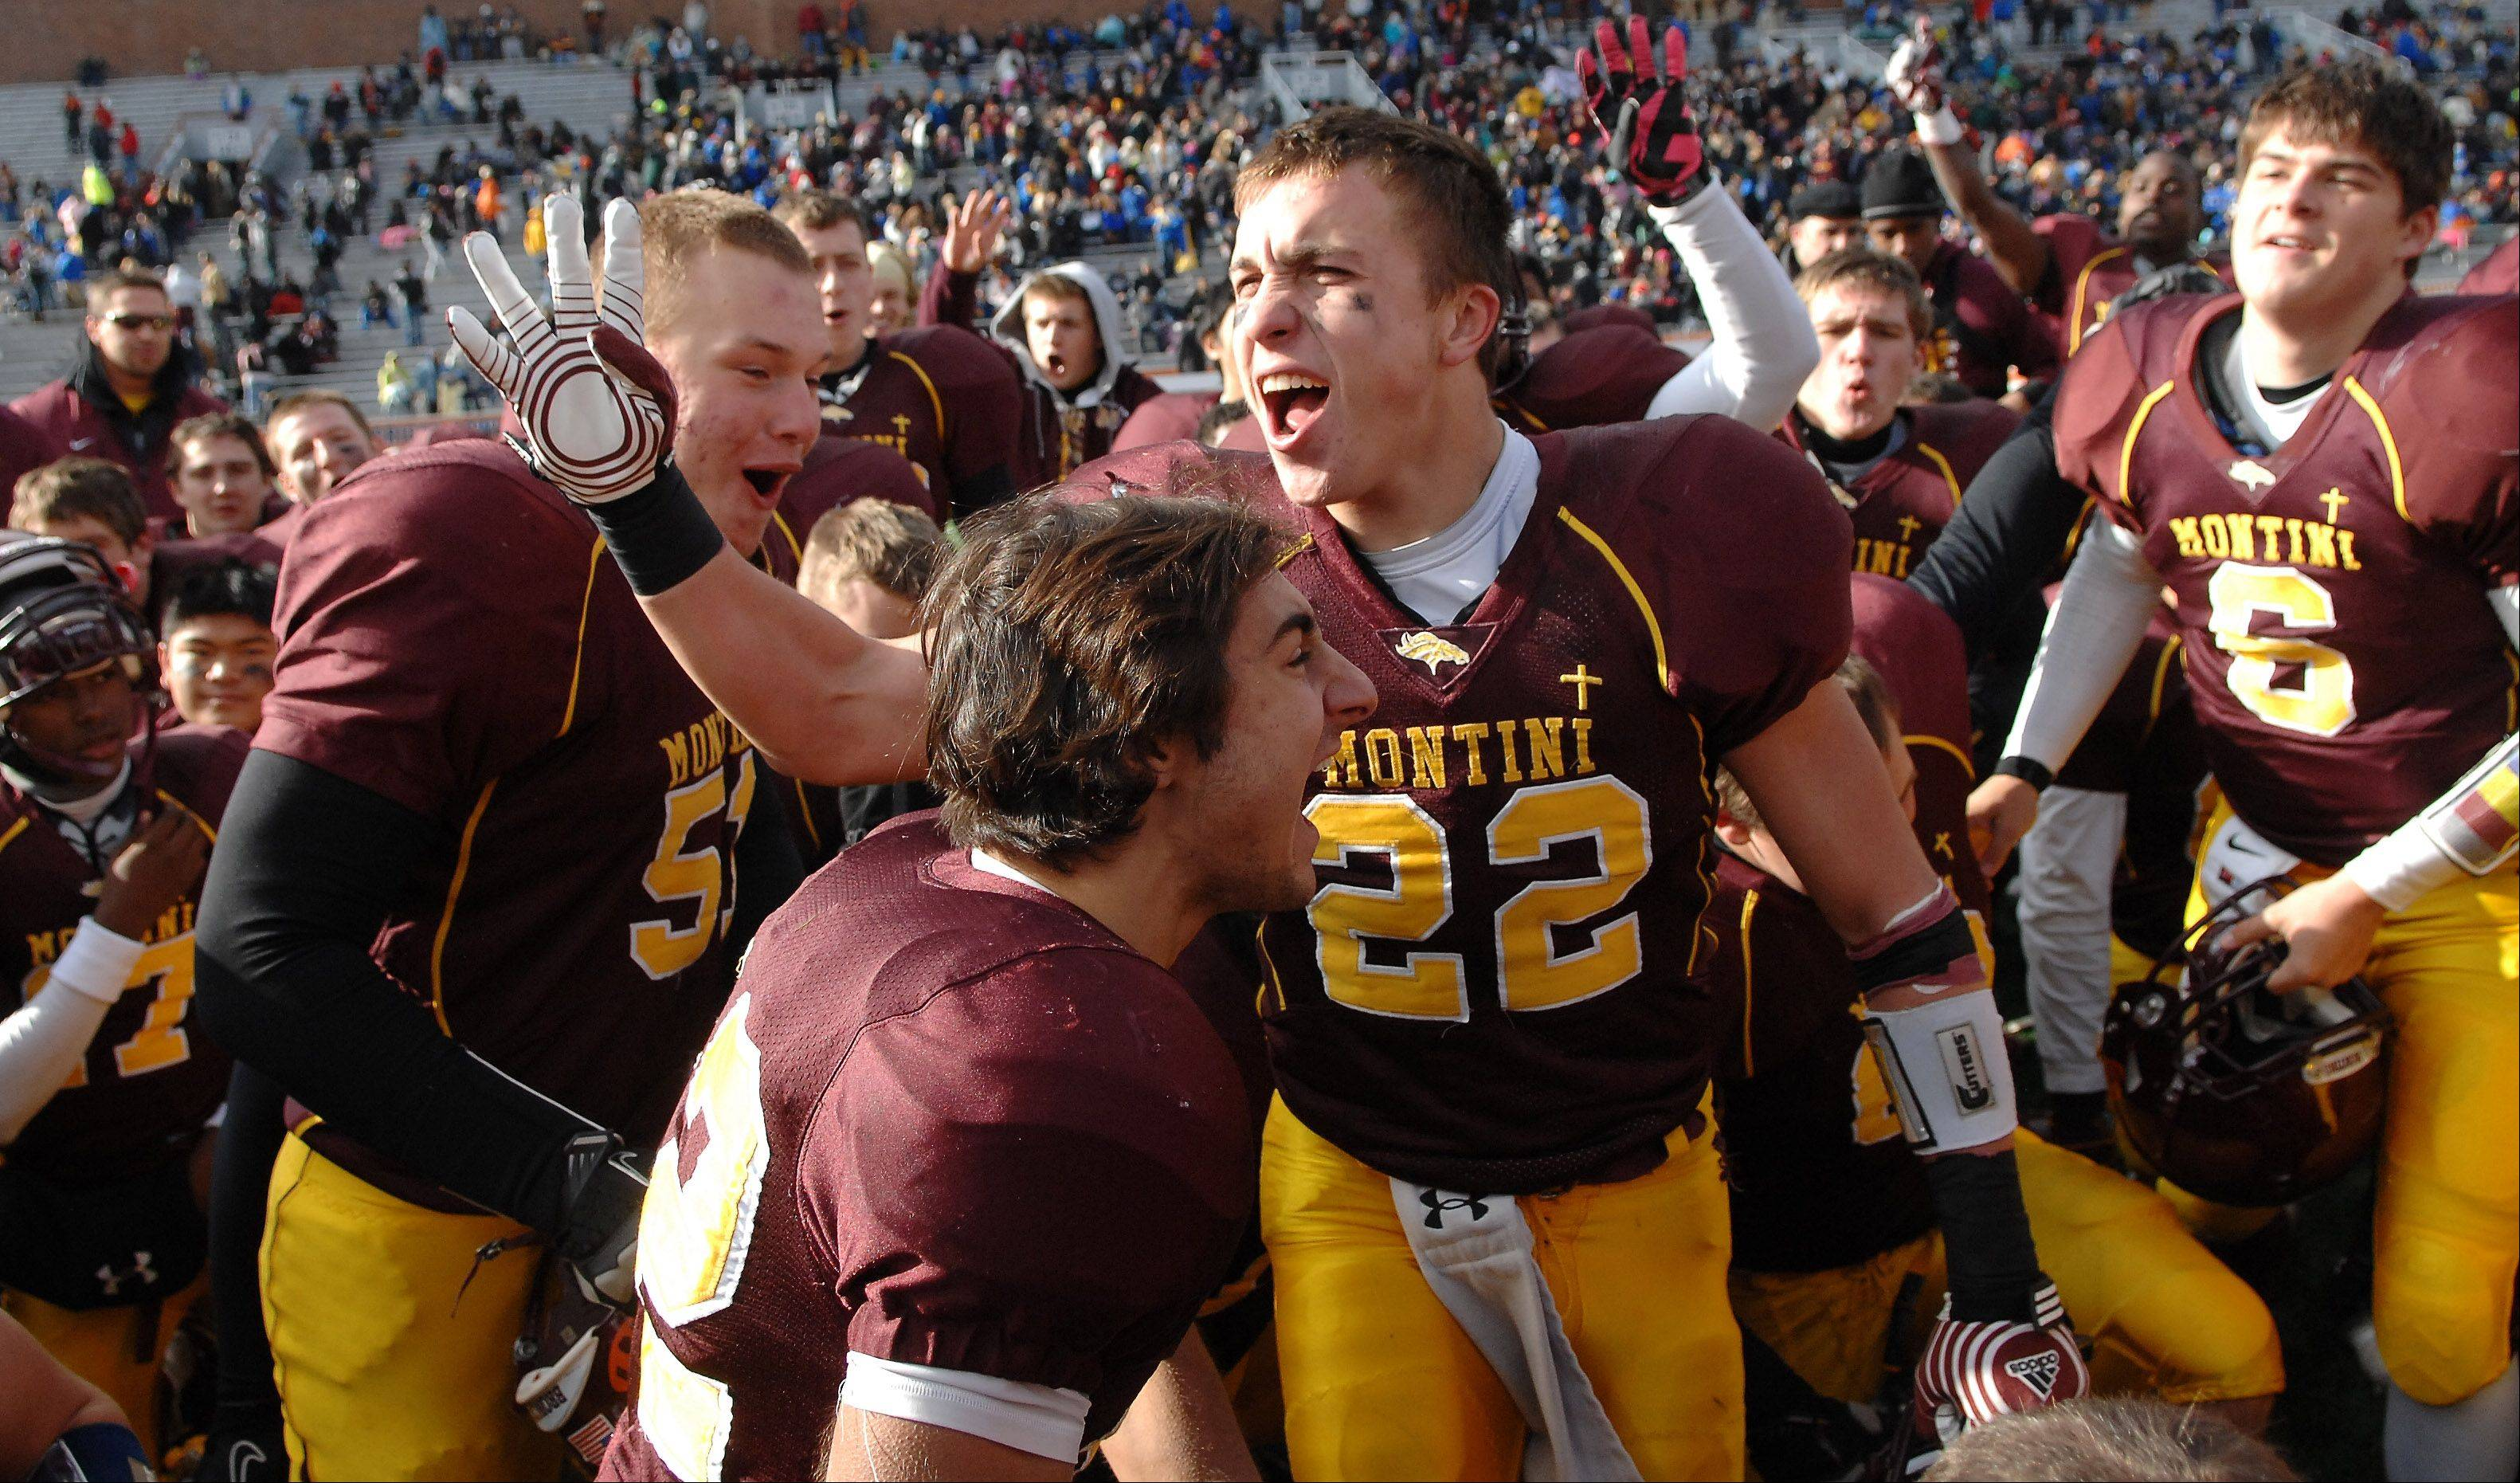 Montini�s Ryan Starbeck (22) and his teammates celebrate after their win over Morris during Saturday�s Class 5A state title game at Memorial Stadium in Champaign.